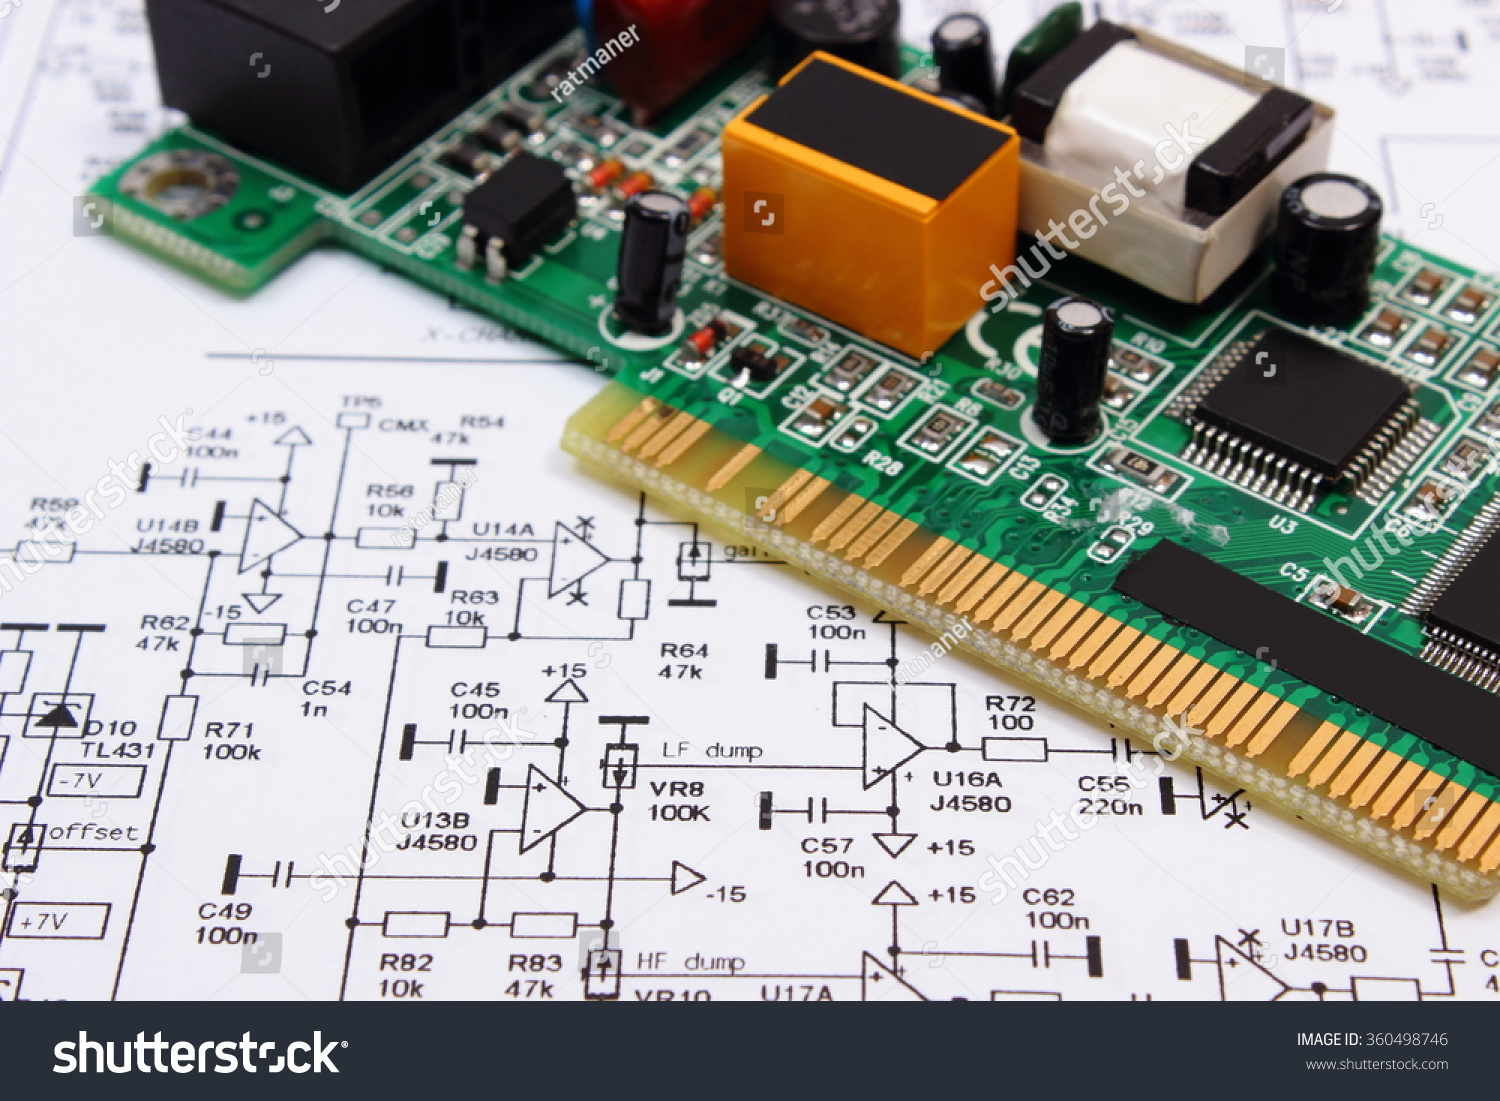 Printed Circuit Board Electrical Components Lying Stock Photo Edit Construction Drawing Of Electronics Drawings And Precision Tools For With On Engineer